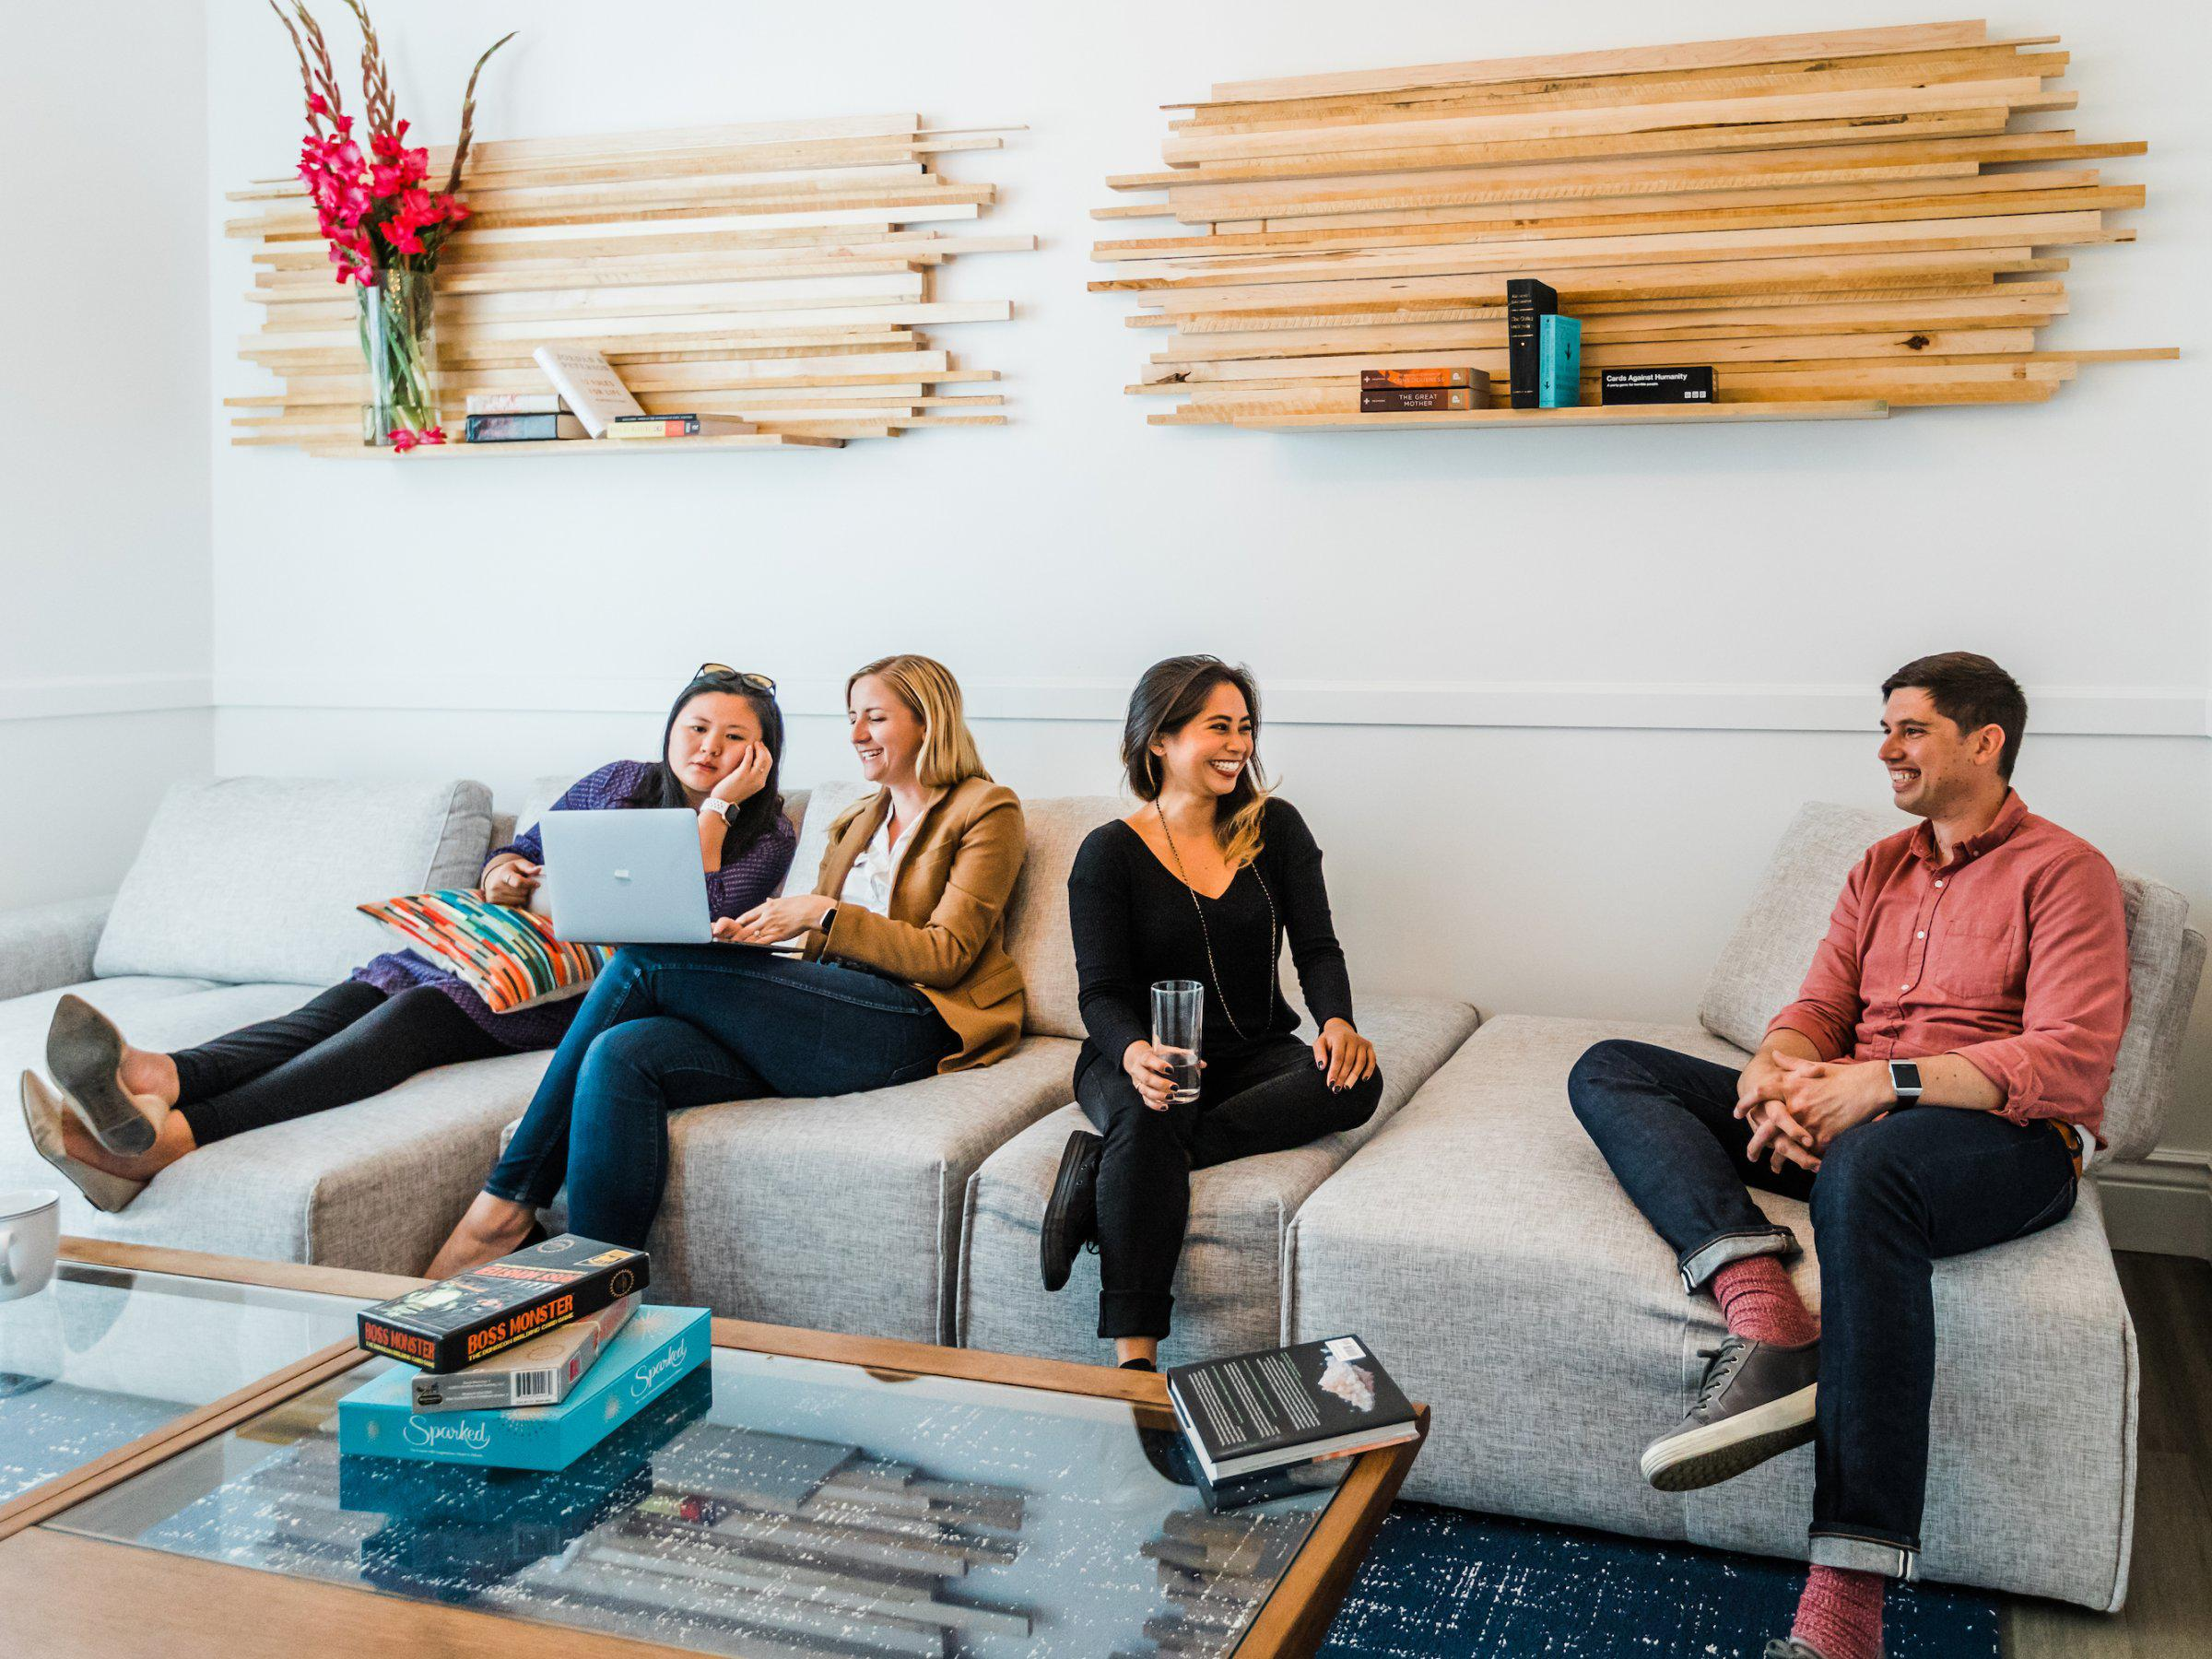 5 Reasons to opt out of co-living spaces in NYC